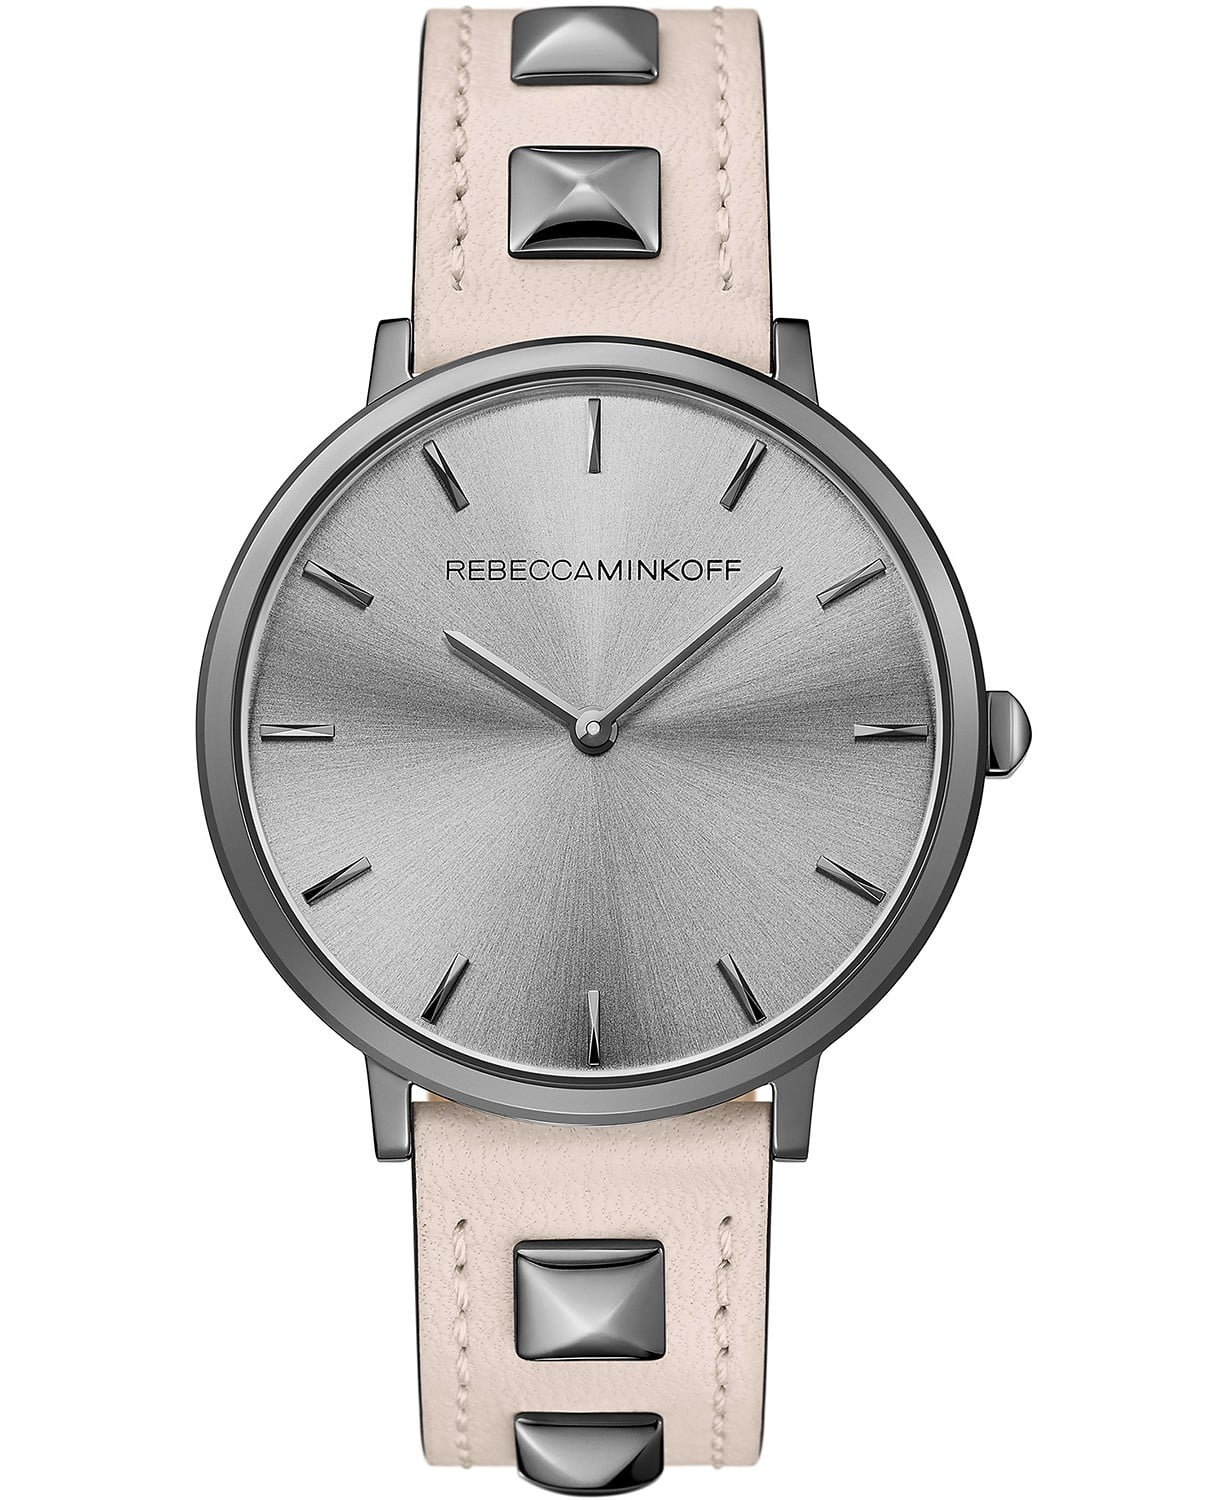 Rebecca Minkoff Women's Watches (various) from $37.50 + Free Shipping